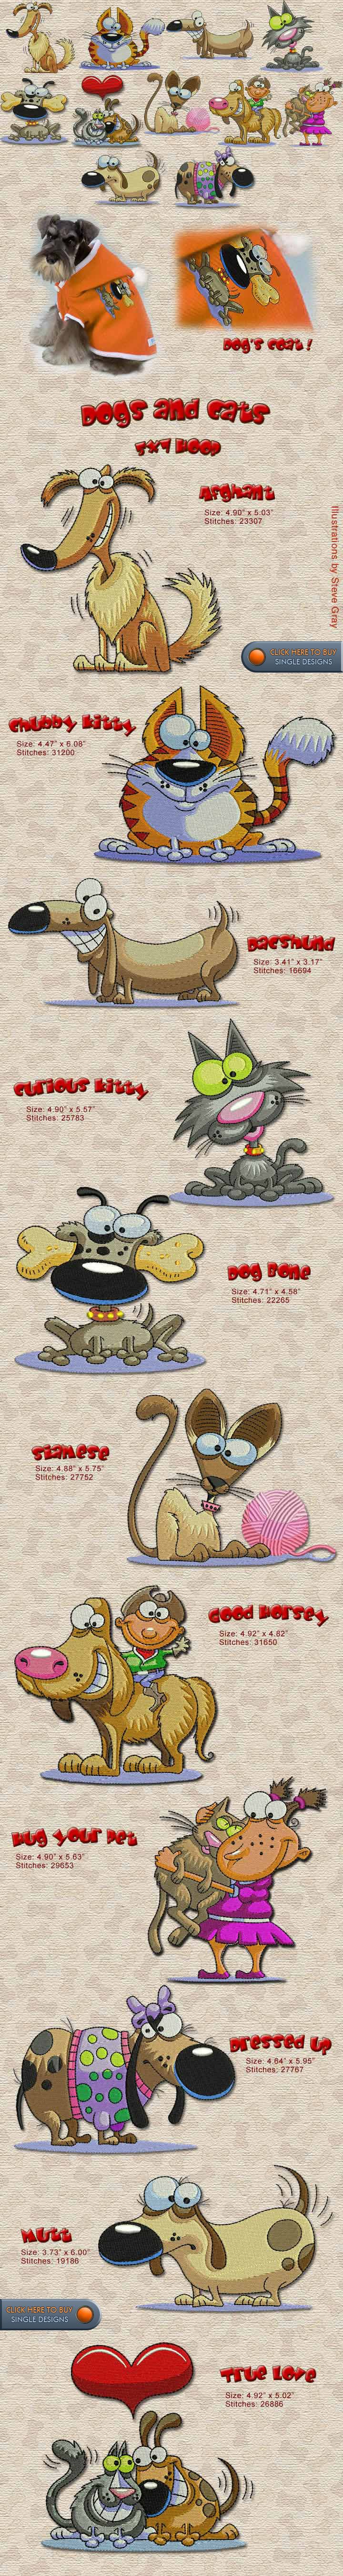 DOG, CAT, FRIENDSHIP Embroidery Designs Free Embroidery Design Patterns Applique